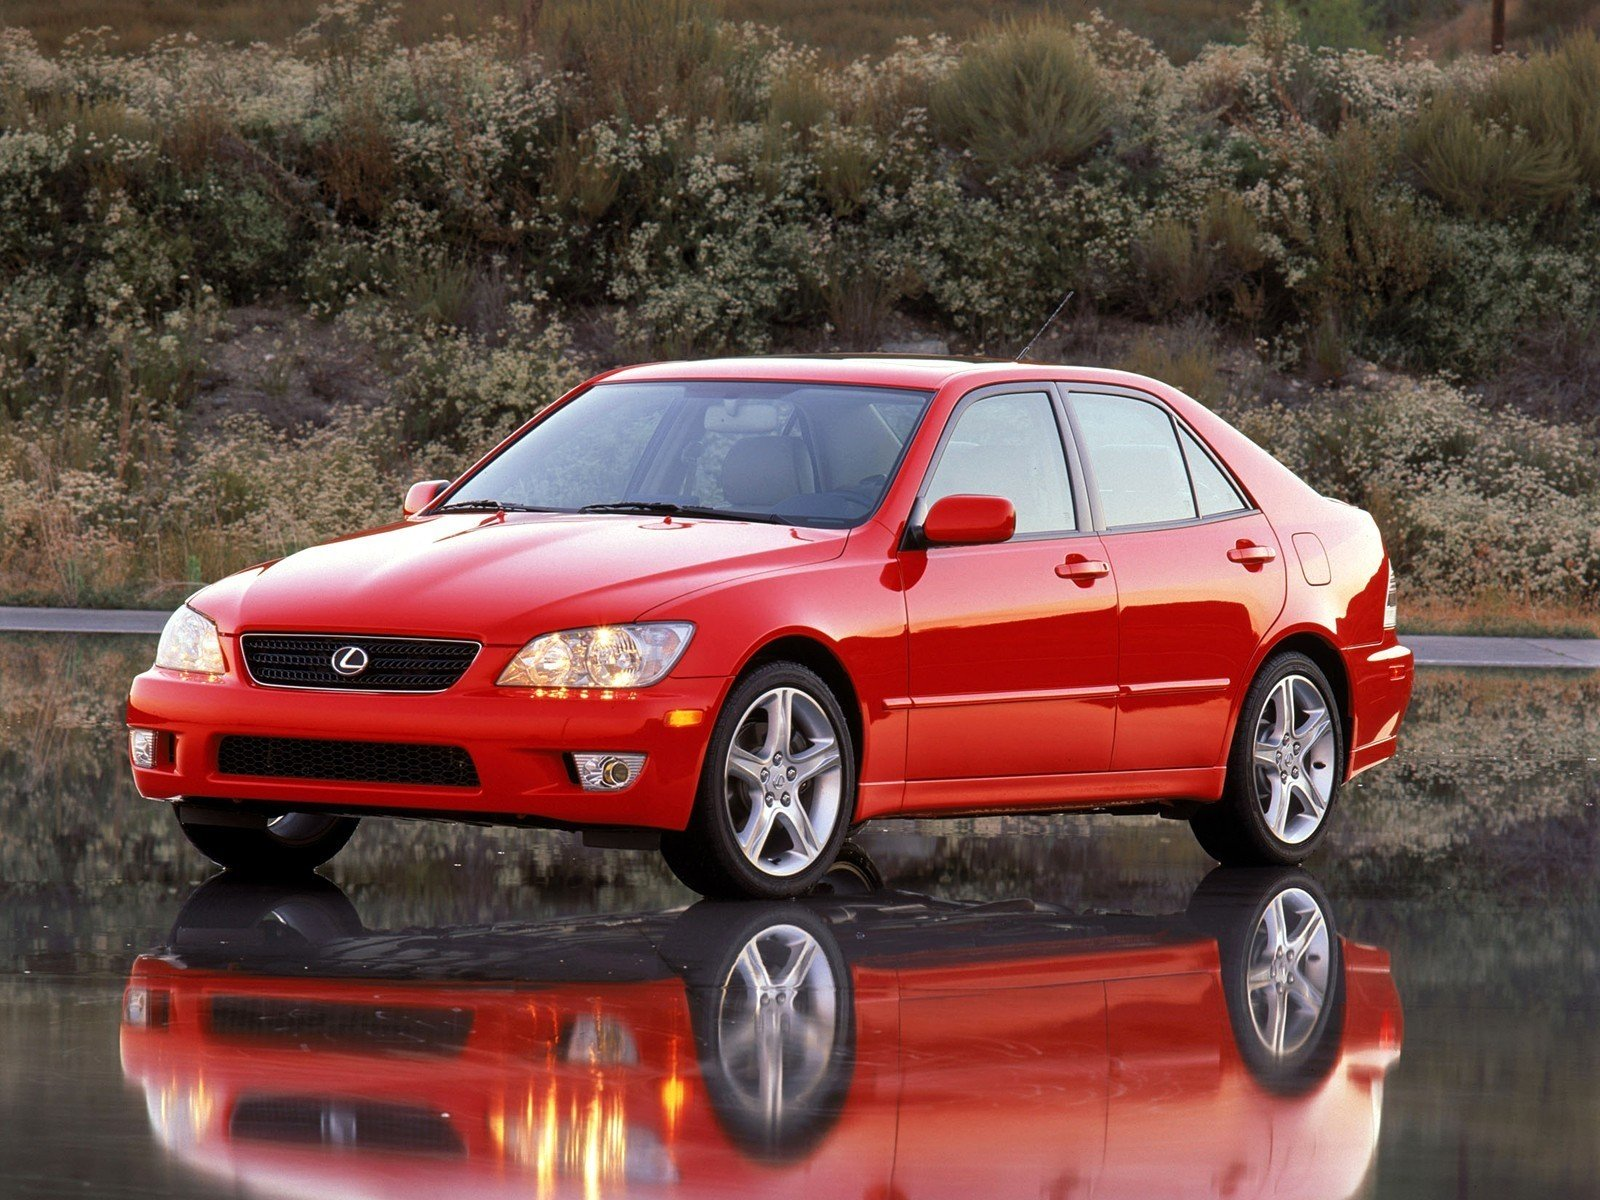 2004 lexus is 300 picture 25160 car review top speed. Black Bedroom Furniture Sets. Home Design Ideas